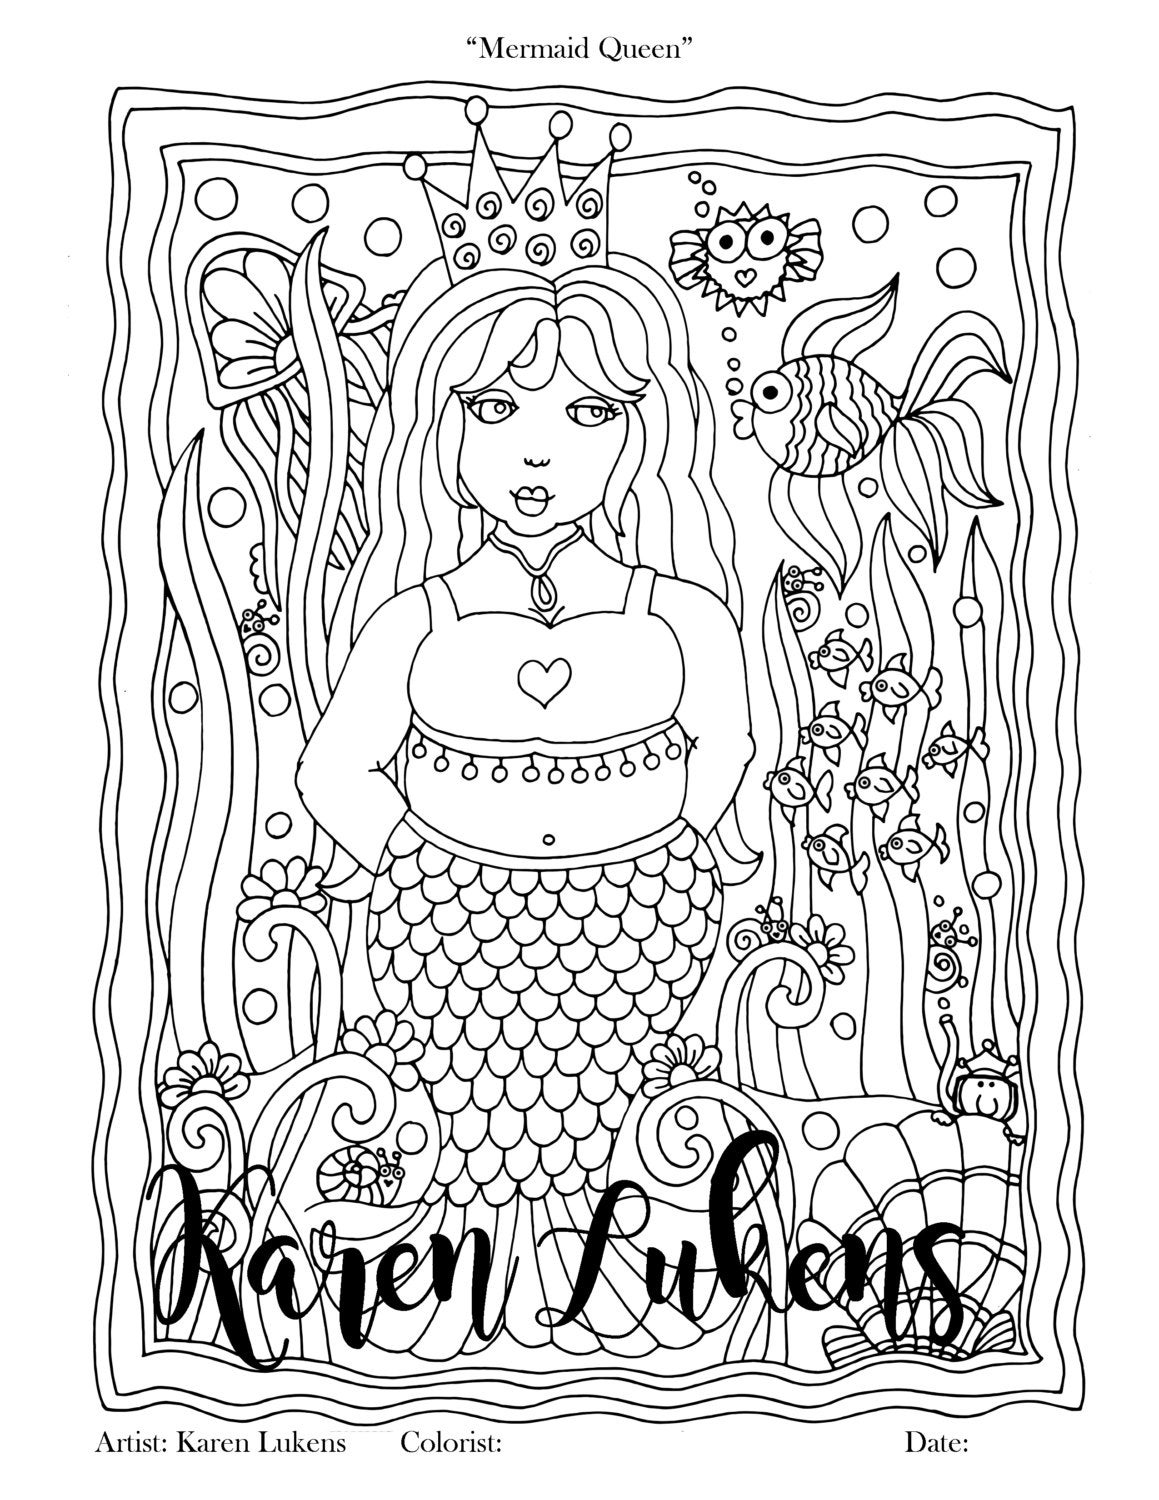 queen mermaid coloring pages mermaid queen 1 adult coloring book page printable instant mermaid pages queen coloring